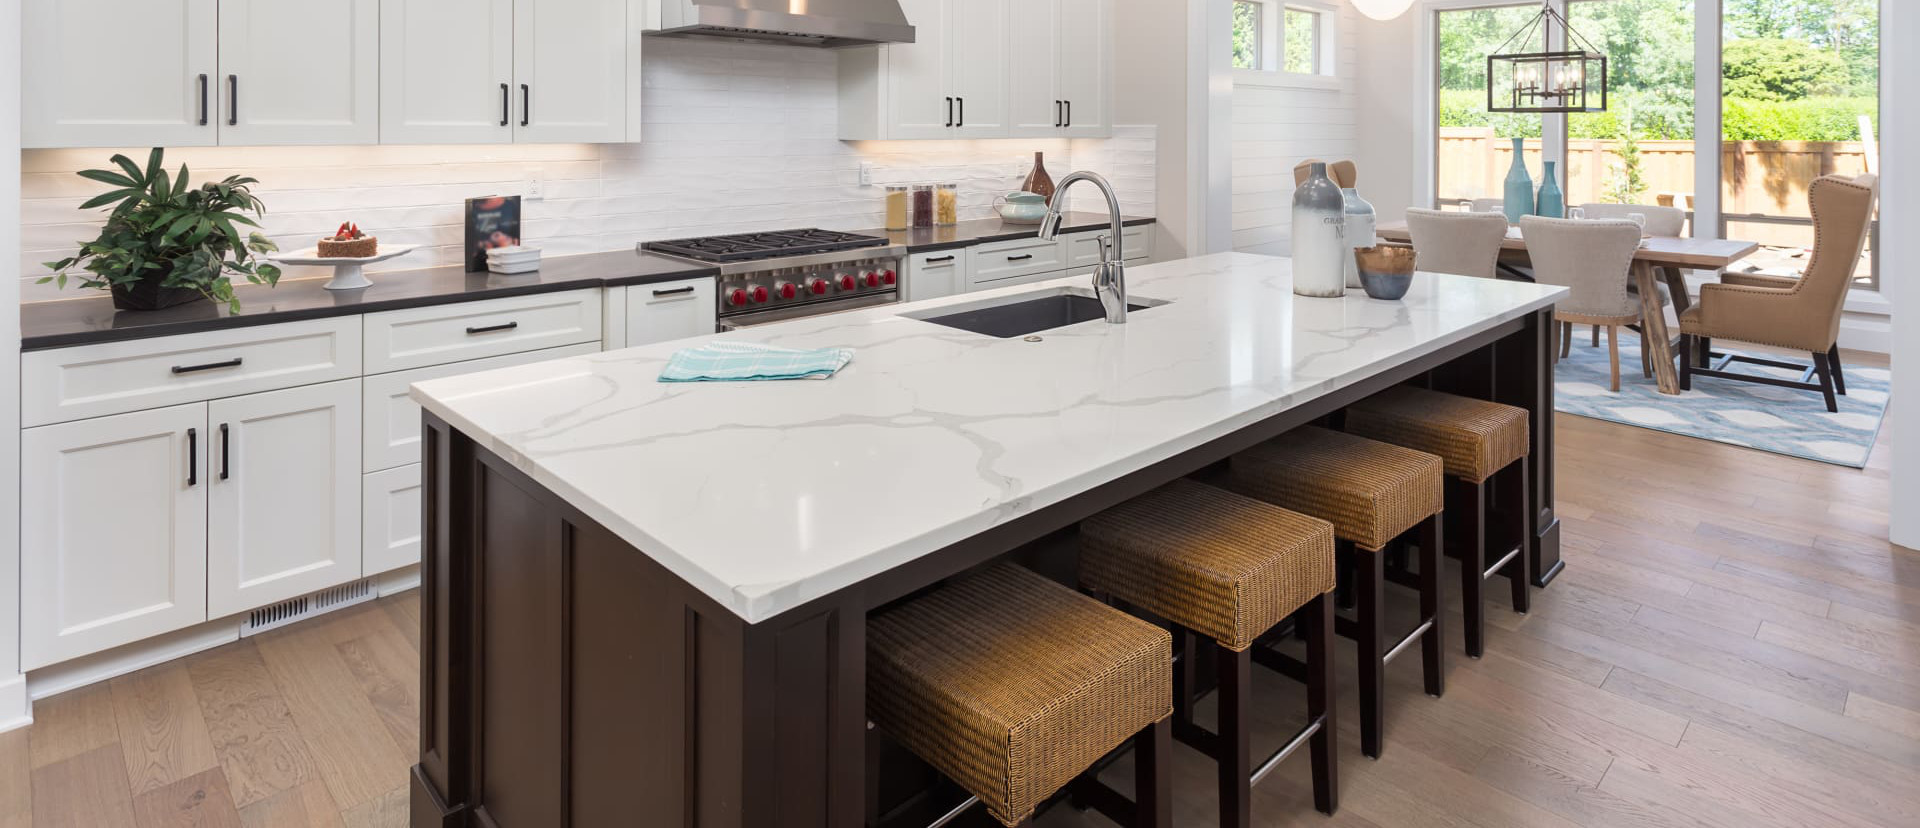 Reasons to choose the granite countertops for your kitchen